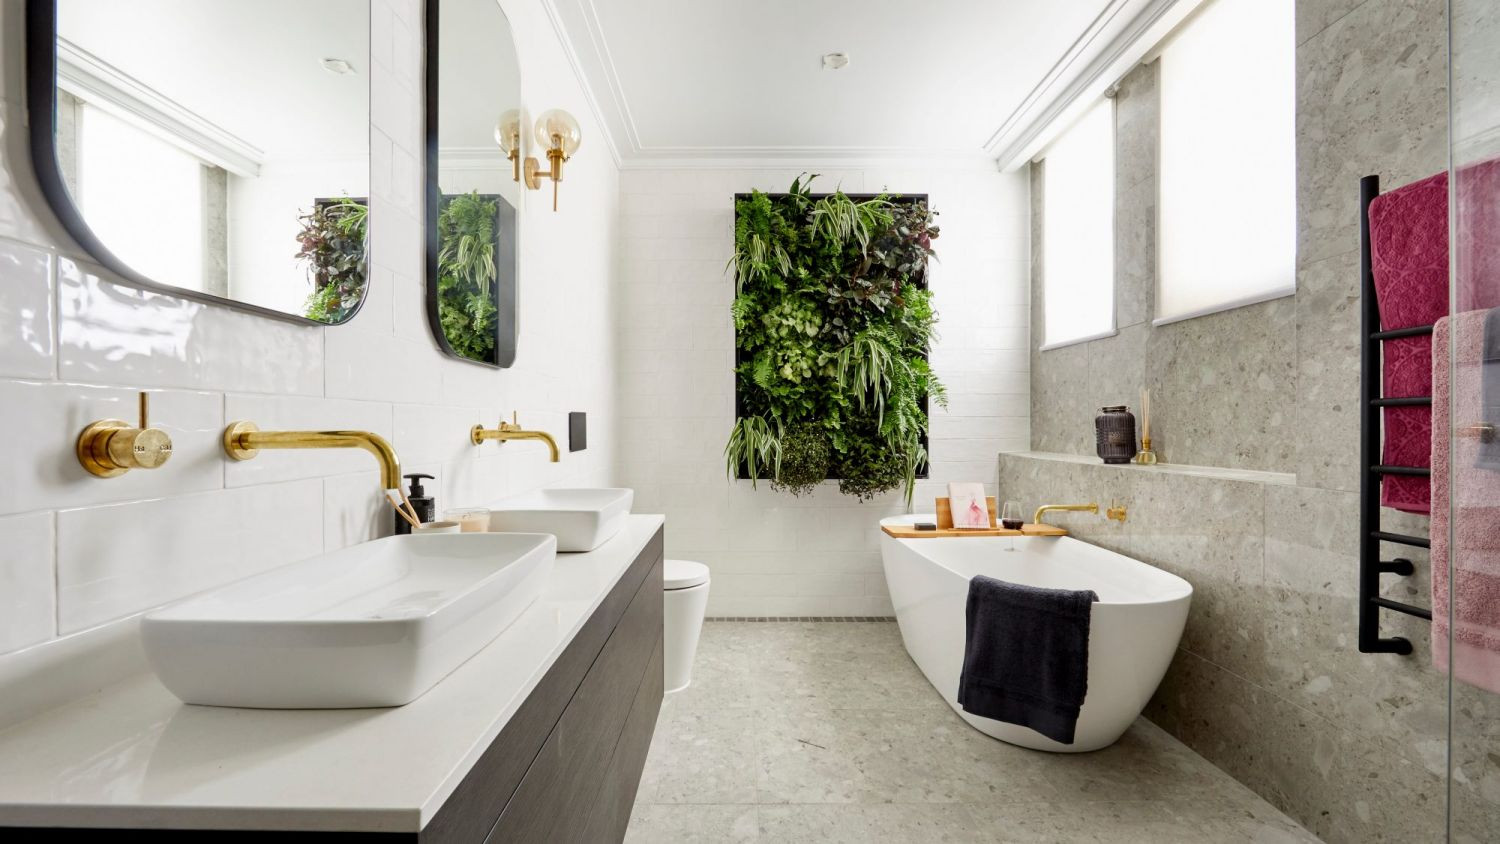 Best ideas about Bathroom Remodel Ideas 2019 . Save or Pin The biggest bathroom design trends of 2019 Now.